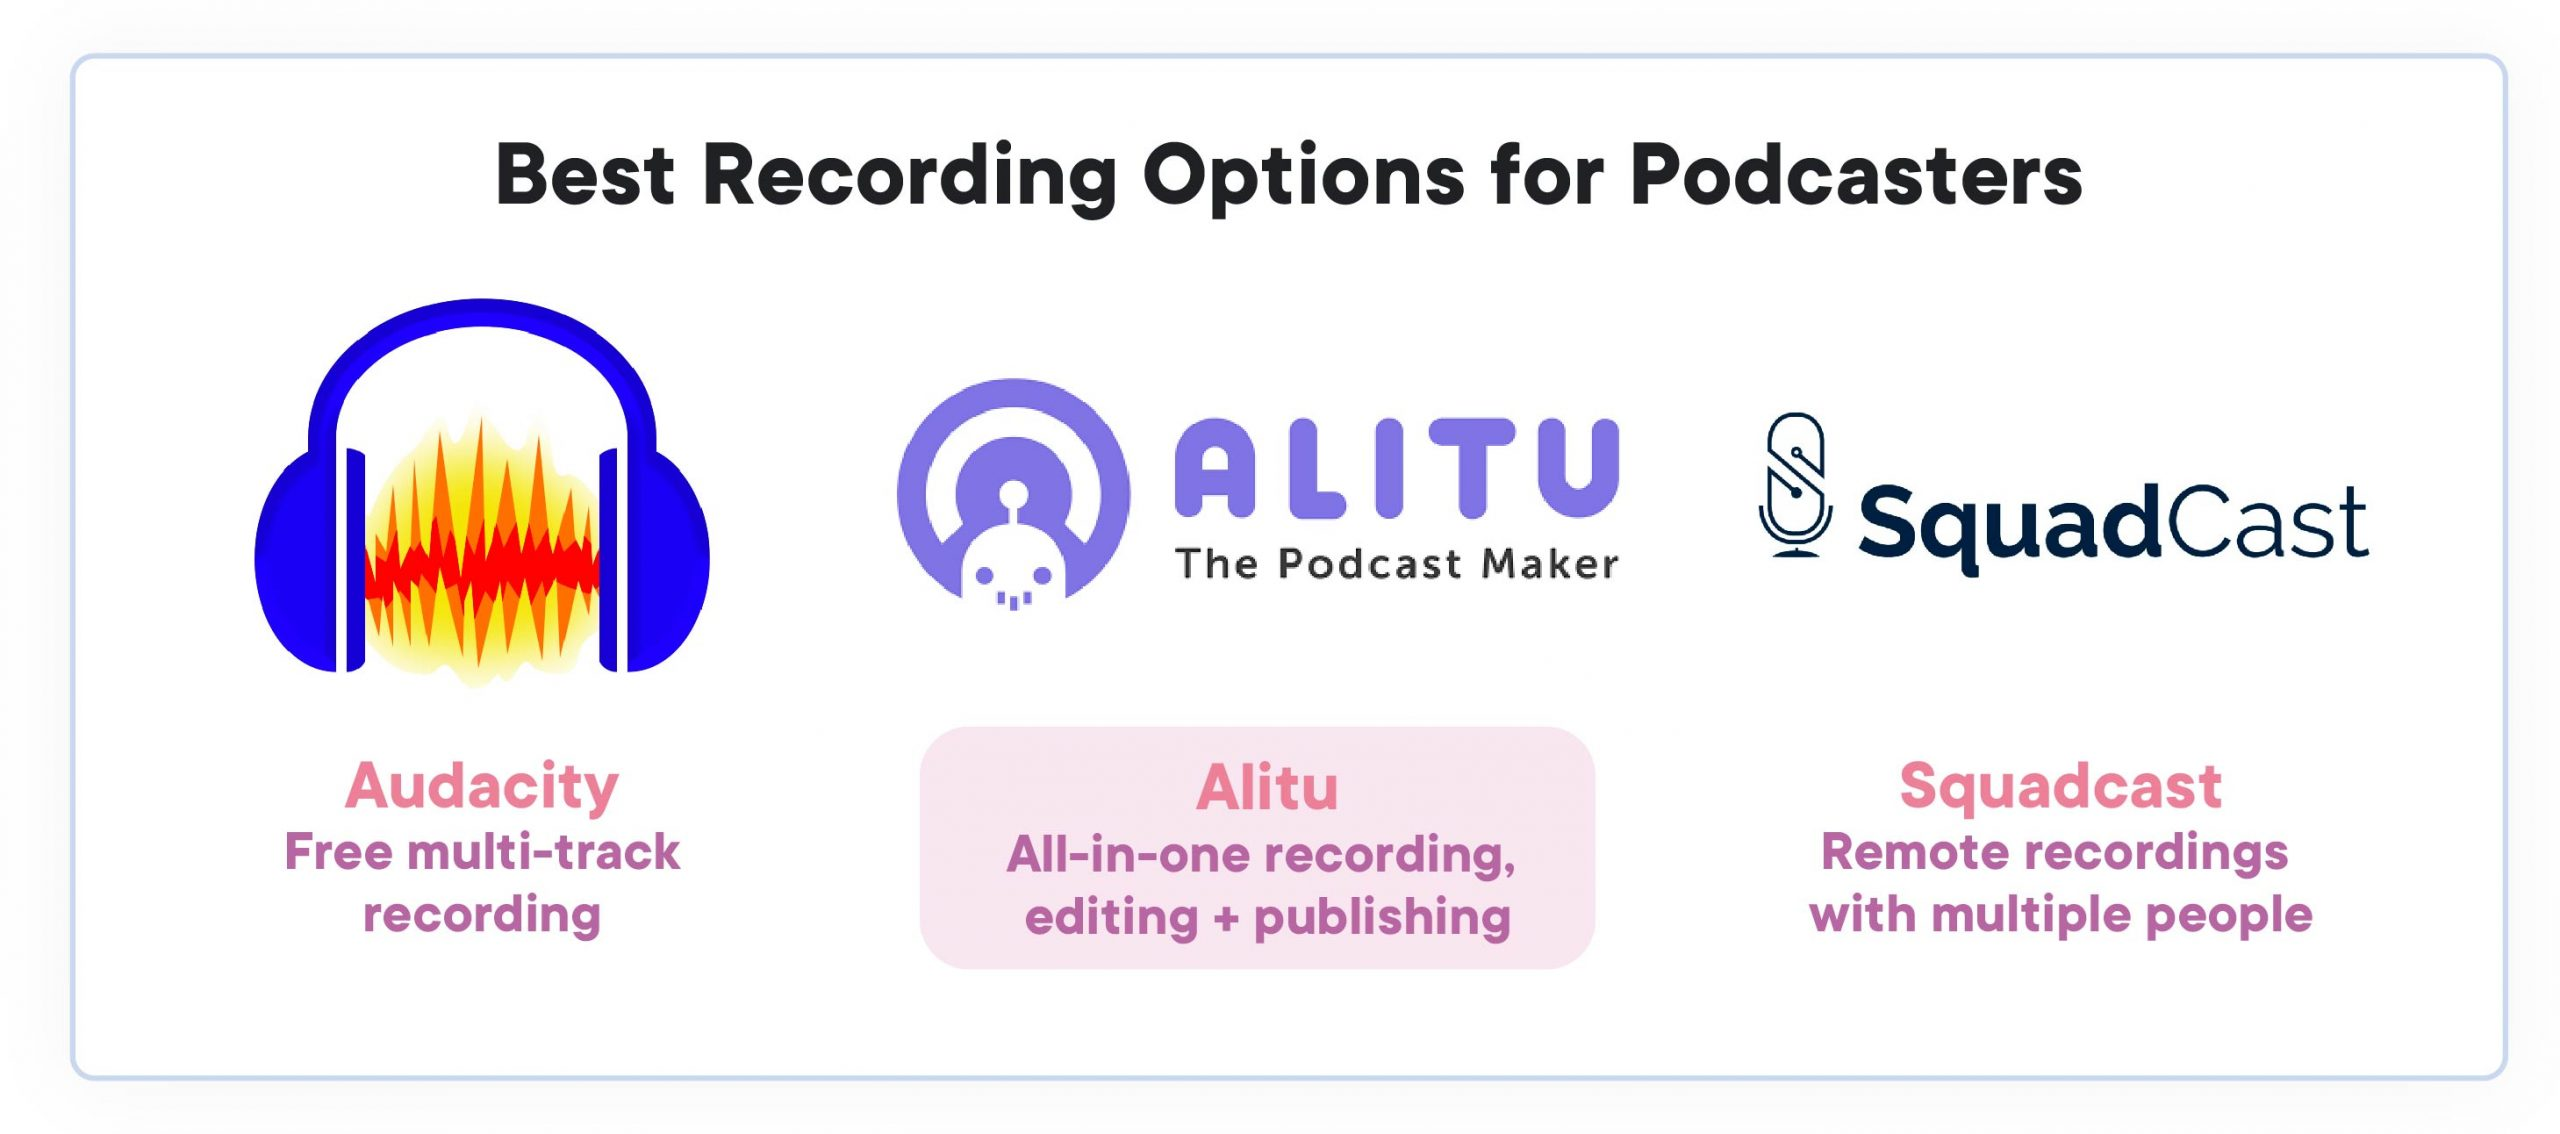 best recording software for podcasters. To the left, Audacity, in the centre, Alitu, to the right, Squadcast.